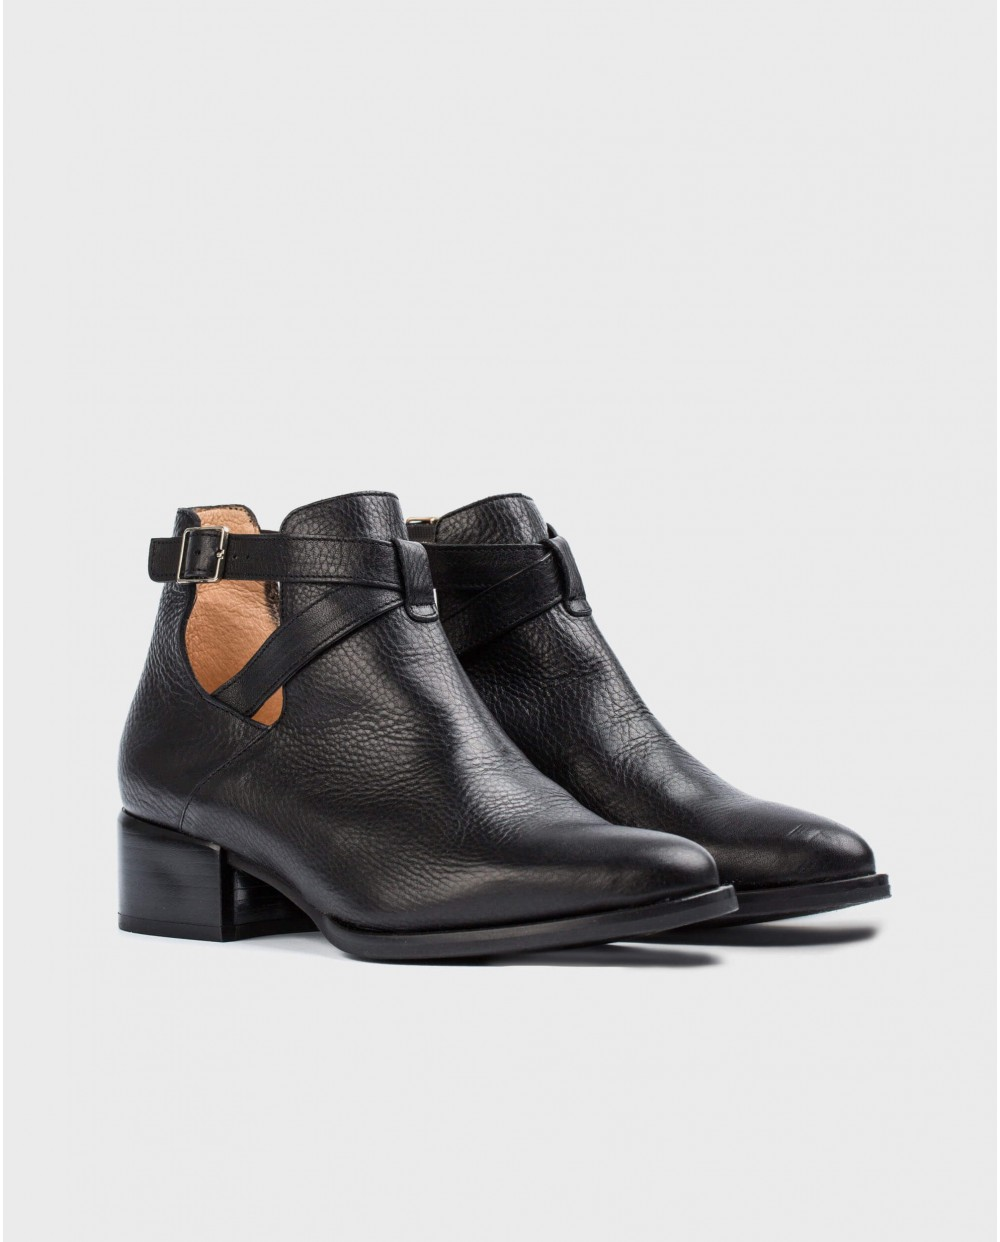 Wonders-Women-Leather ankle boot with criss-cross straps